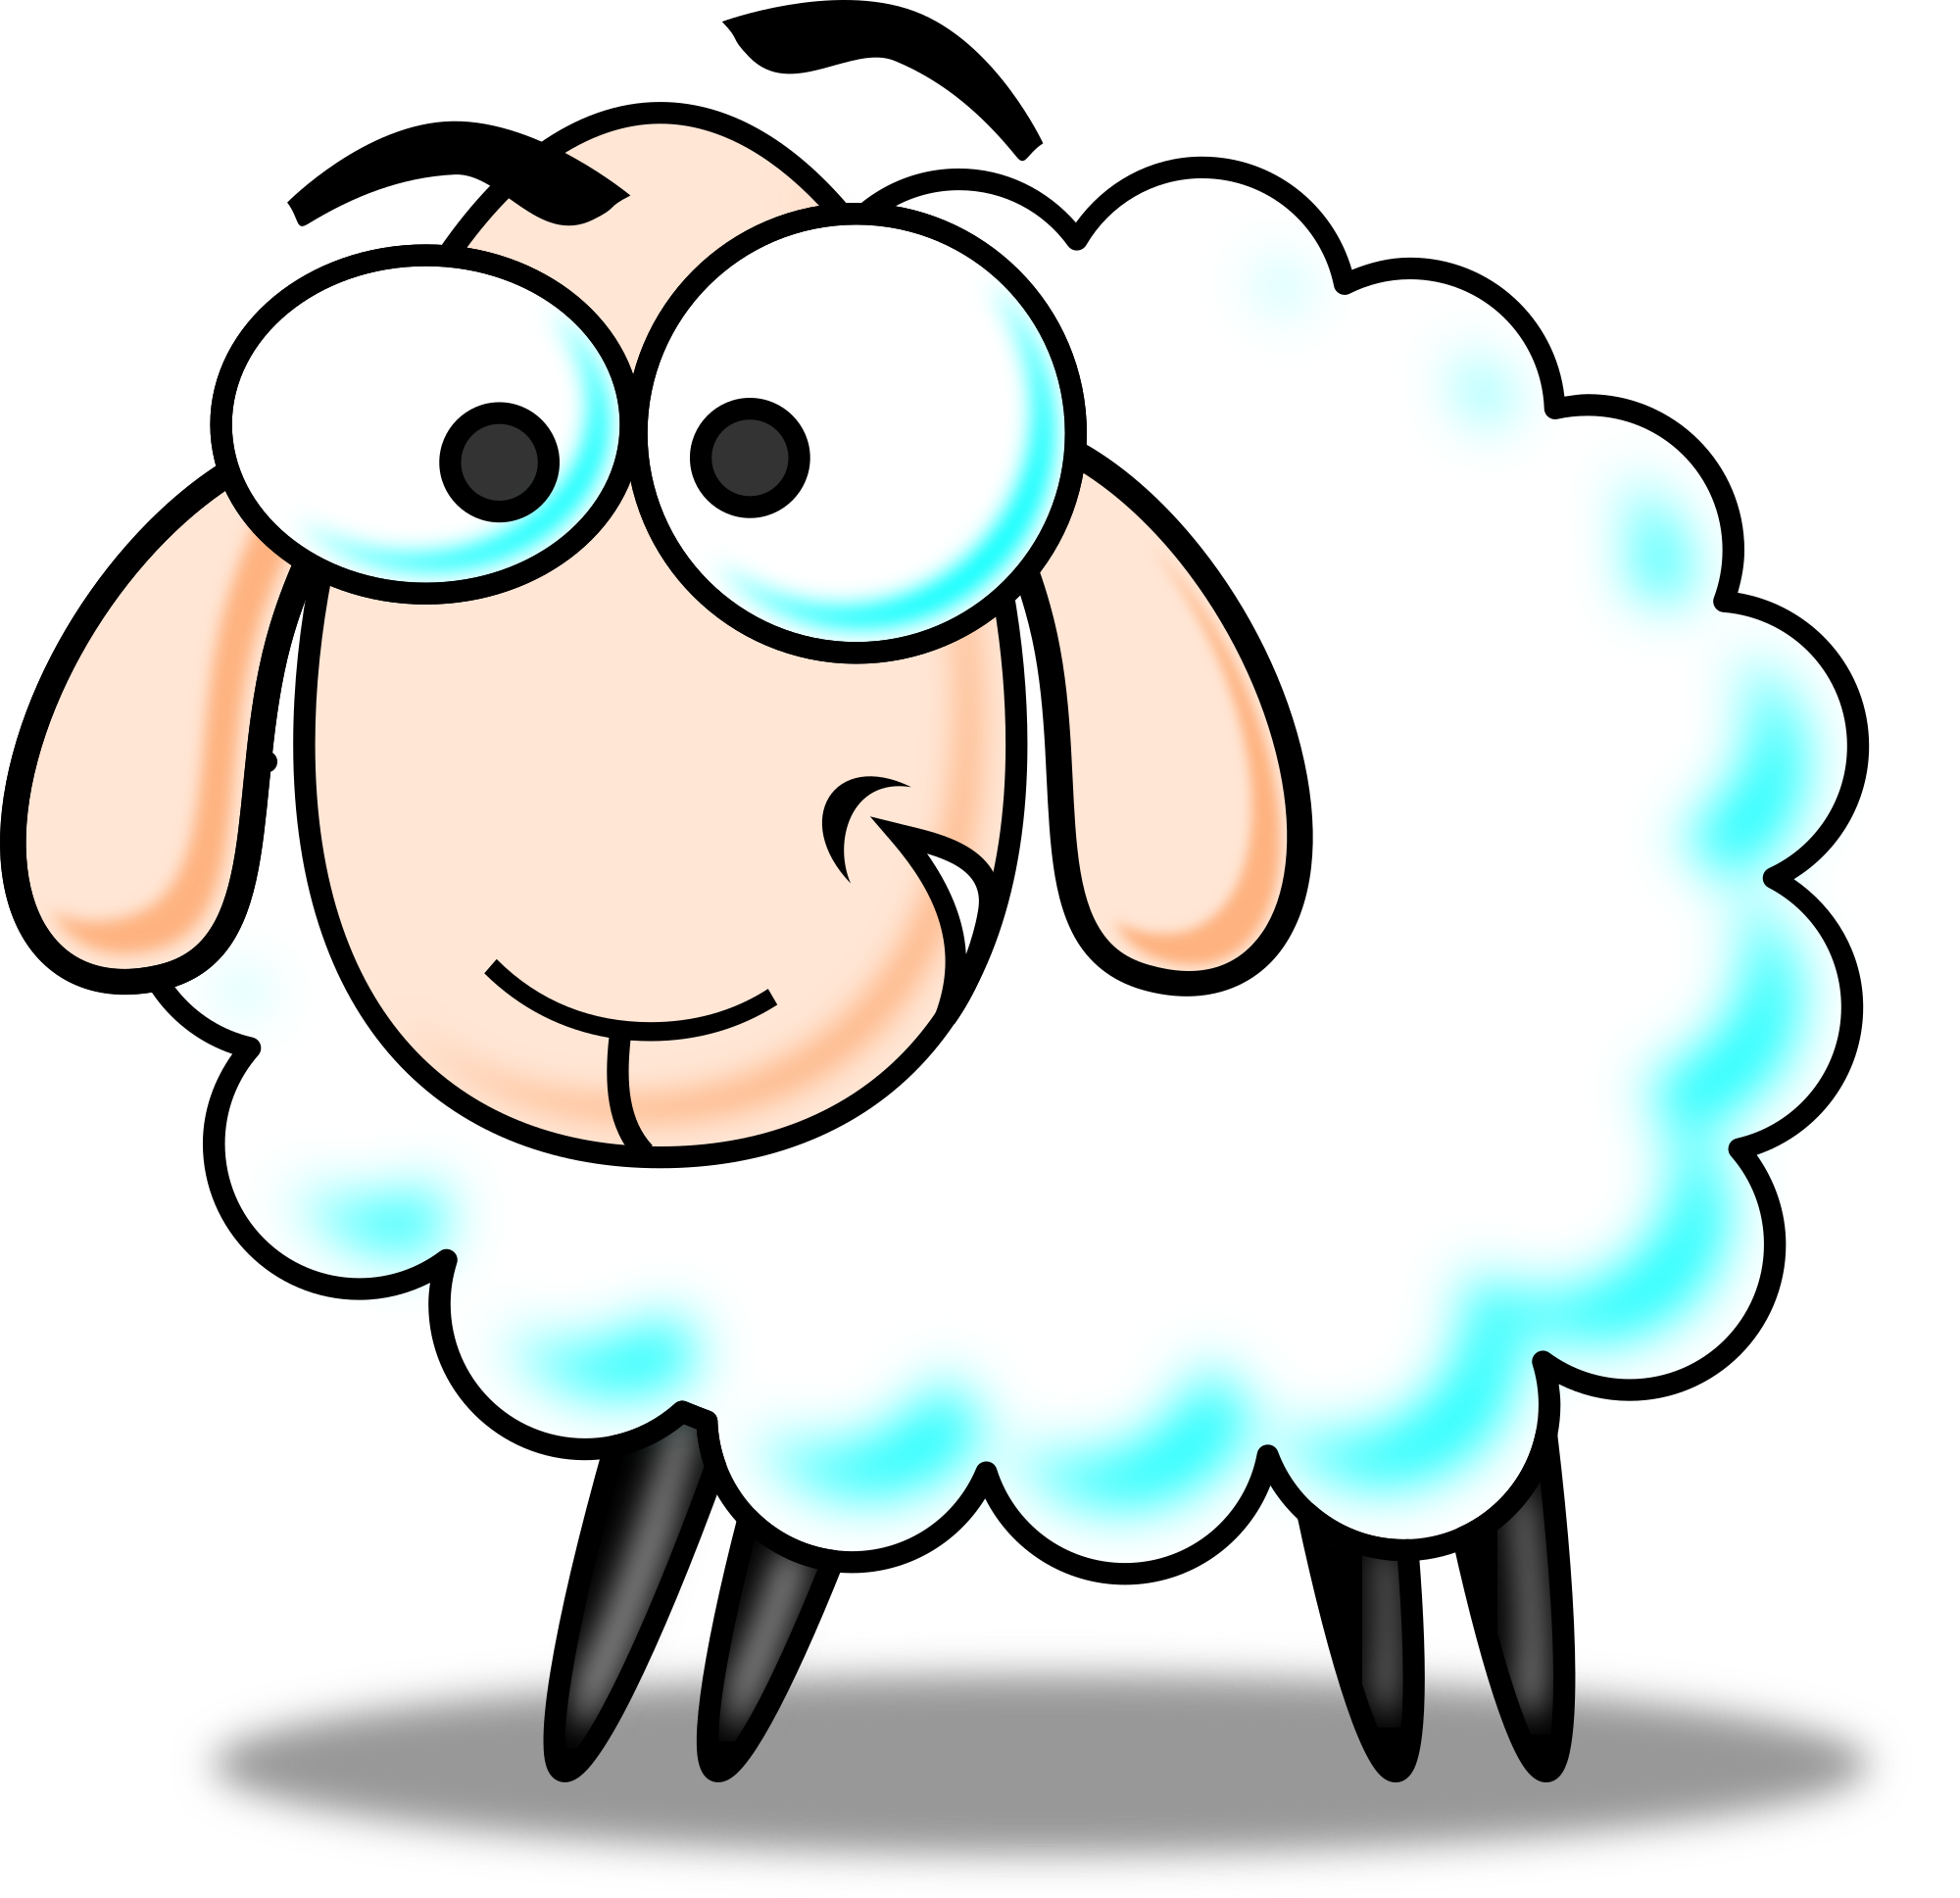 sheep clipart clipart and .-sheep clipart clipart and .-10